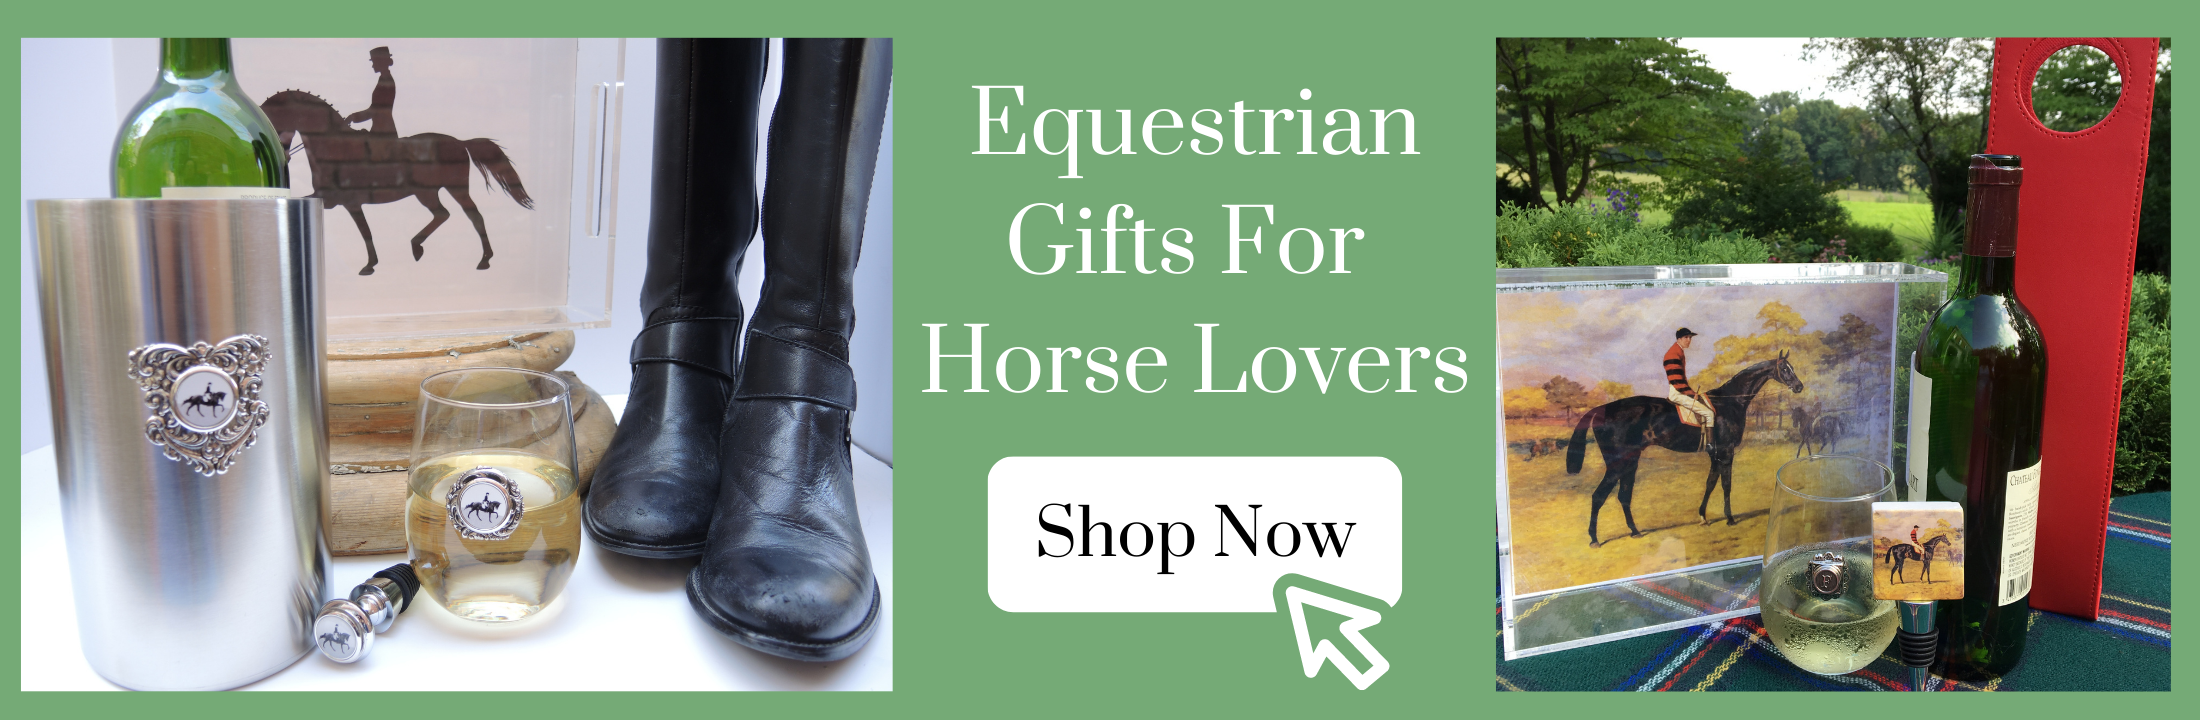 Equestrian Gifts for Horse Lovers